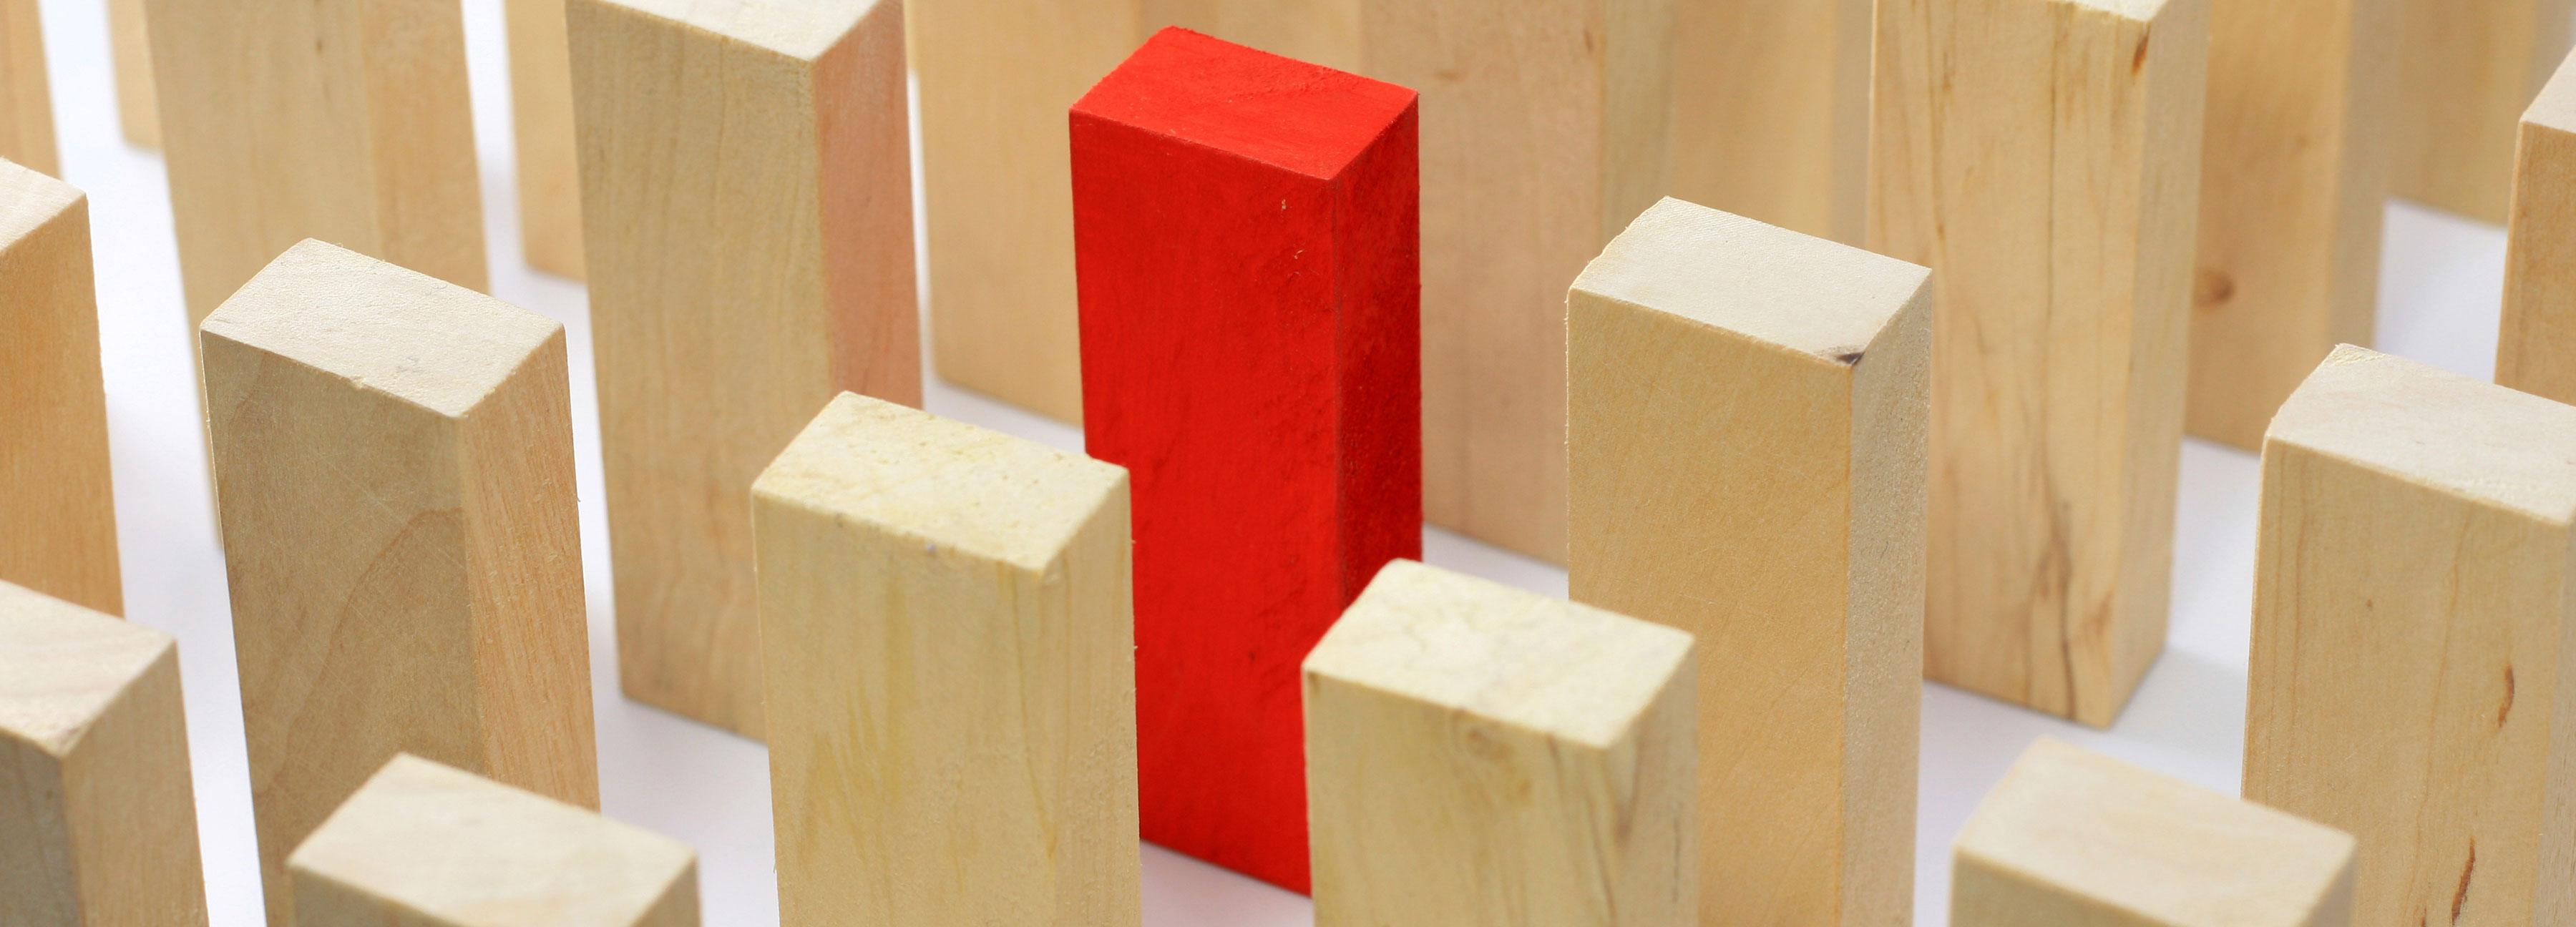 One red block among wooden blocks